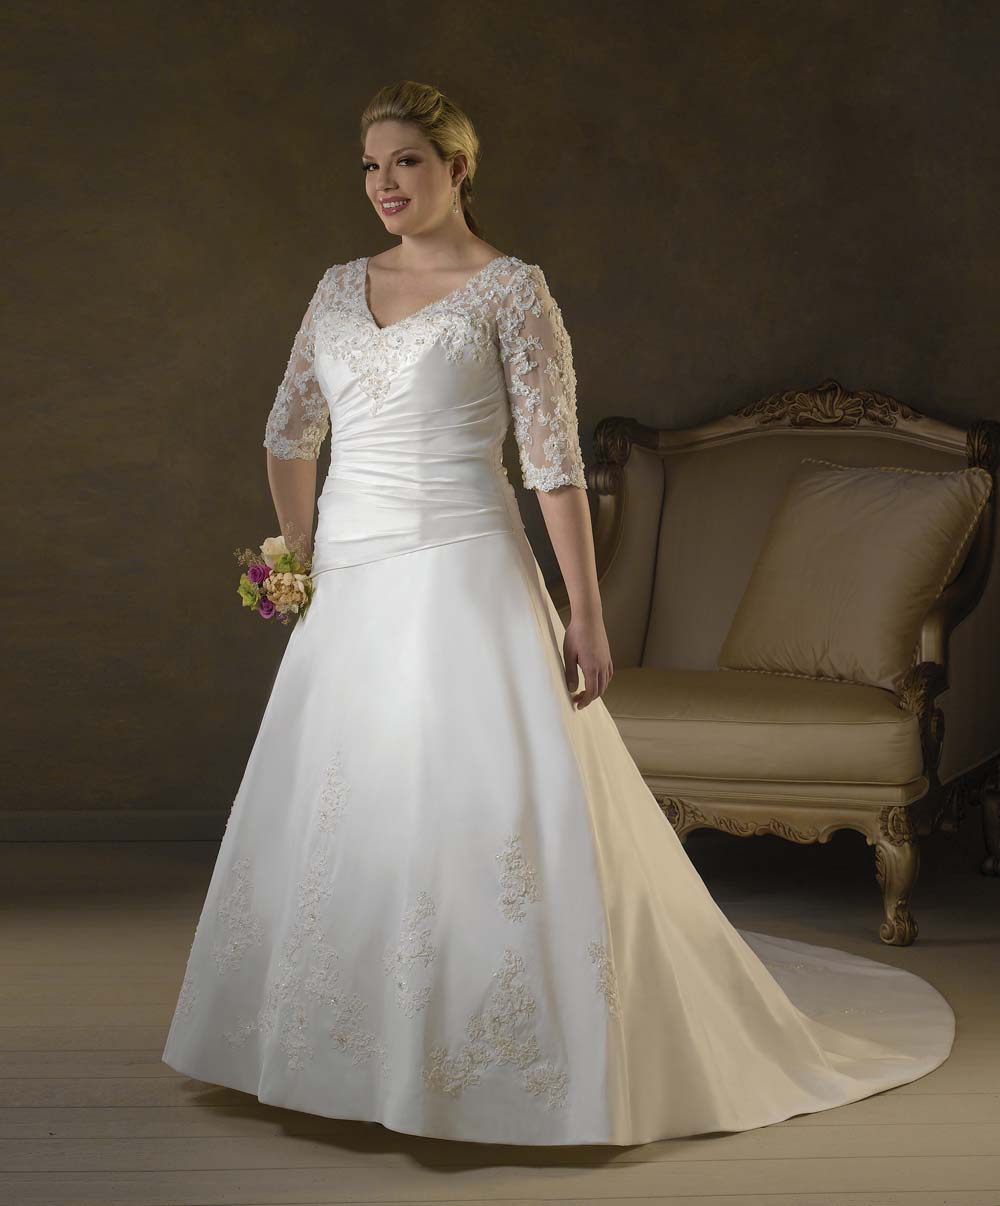 Plus size 3 4 lace sleeves wedding dress gown for Lace wedding dresses plus size